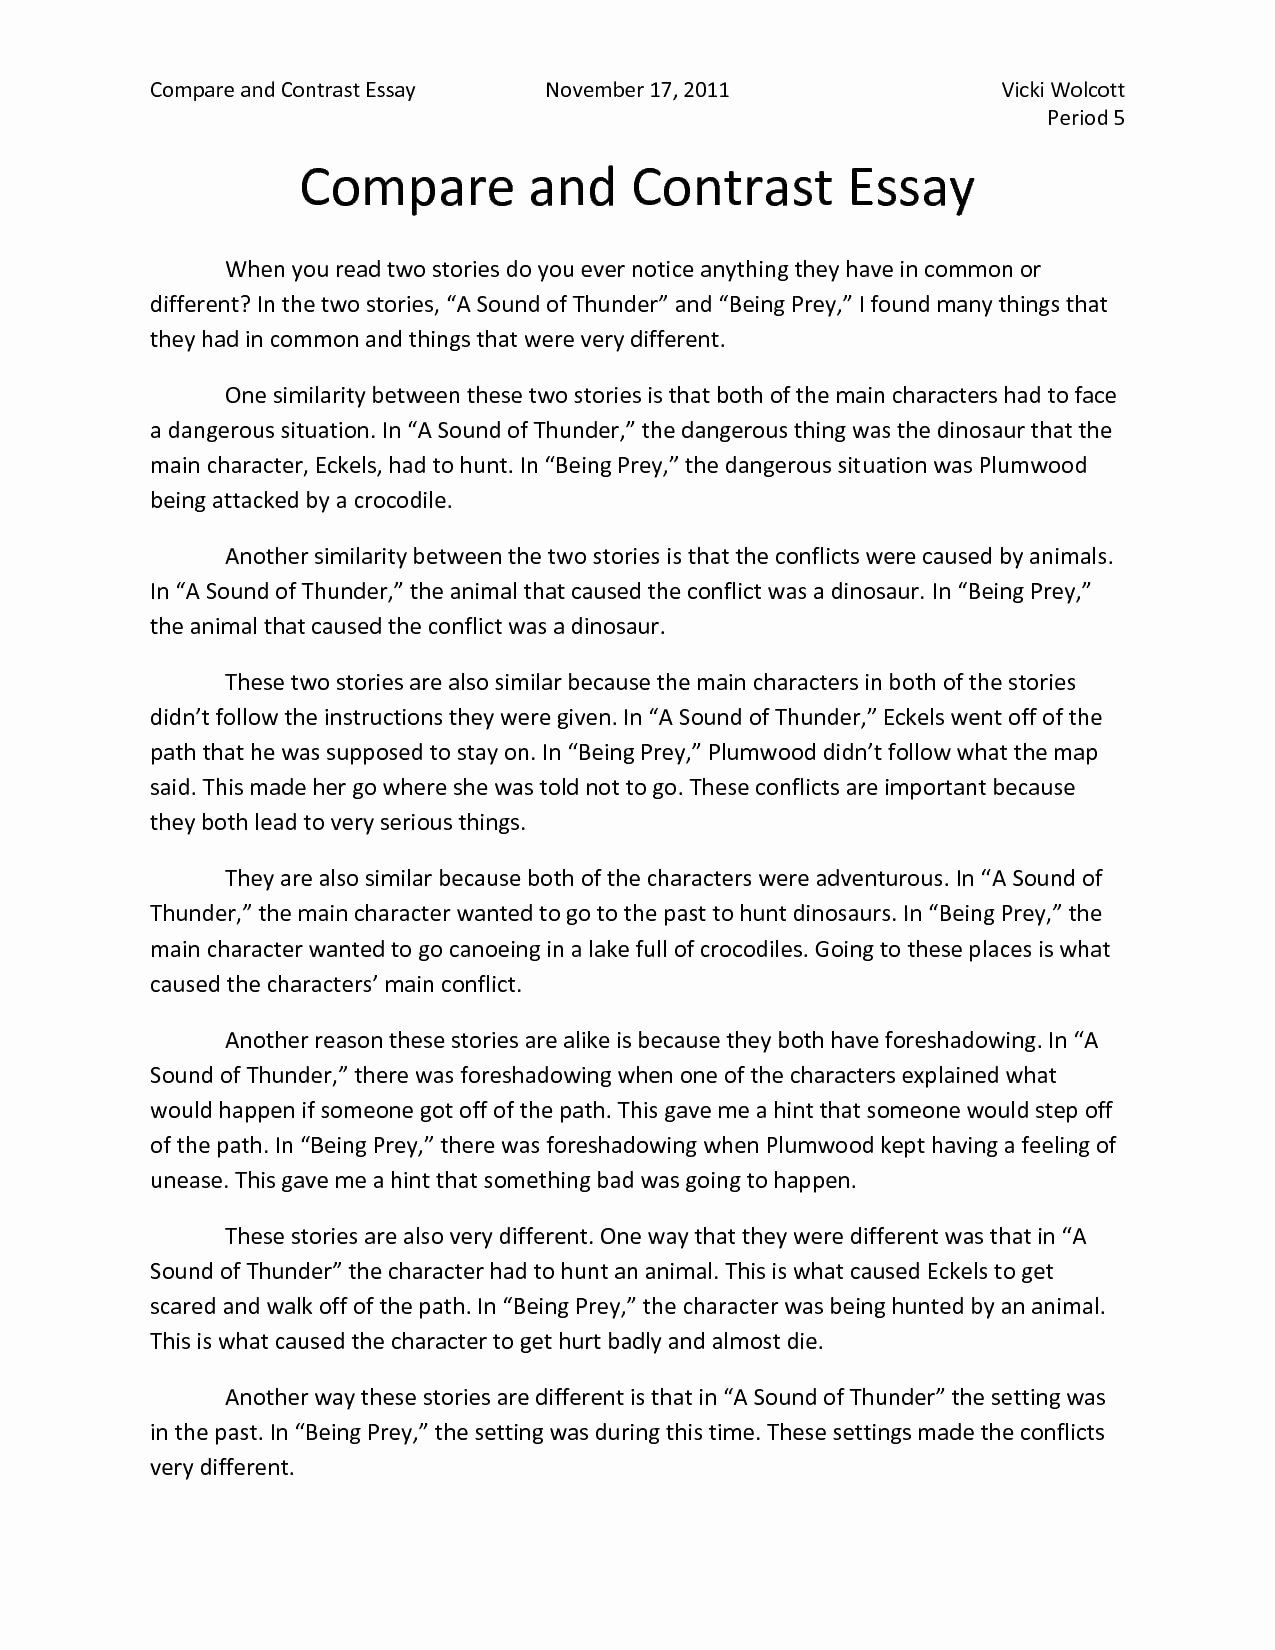 Art Institute Essay Example Awesome Pare And Contrast Essay Compare And Contrast Essay Examples Essay